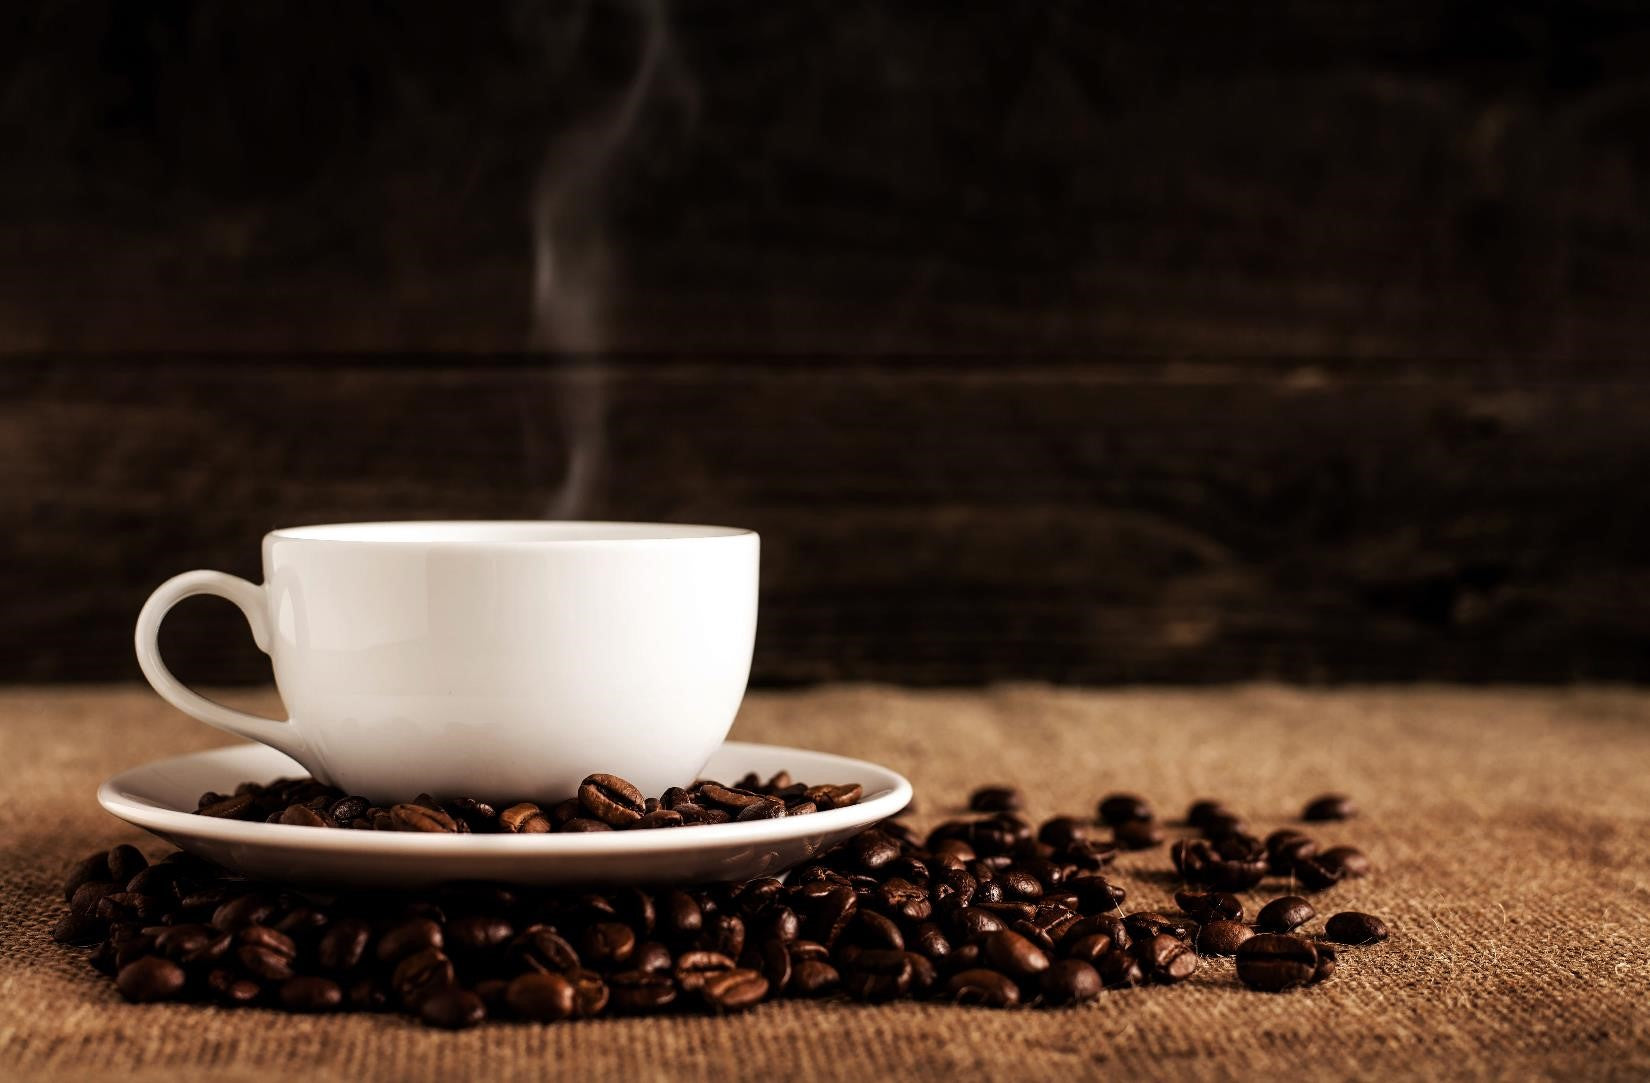 The half life of caffeine lasts for hours after your last drink